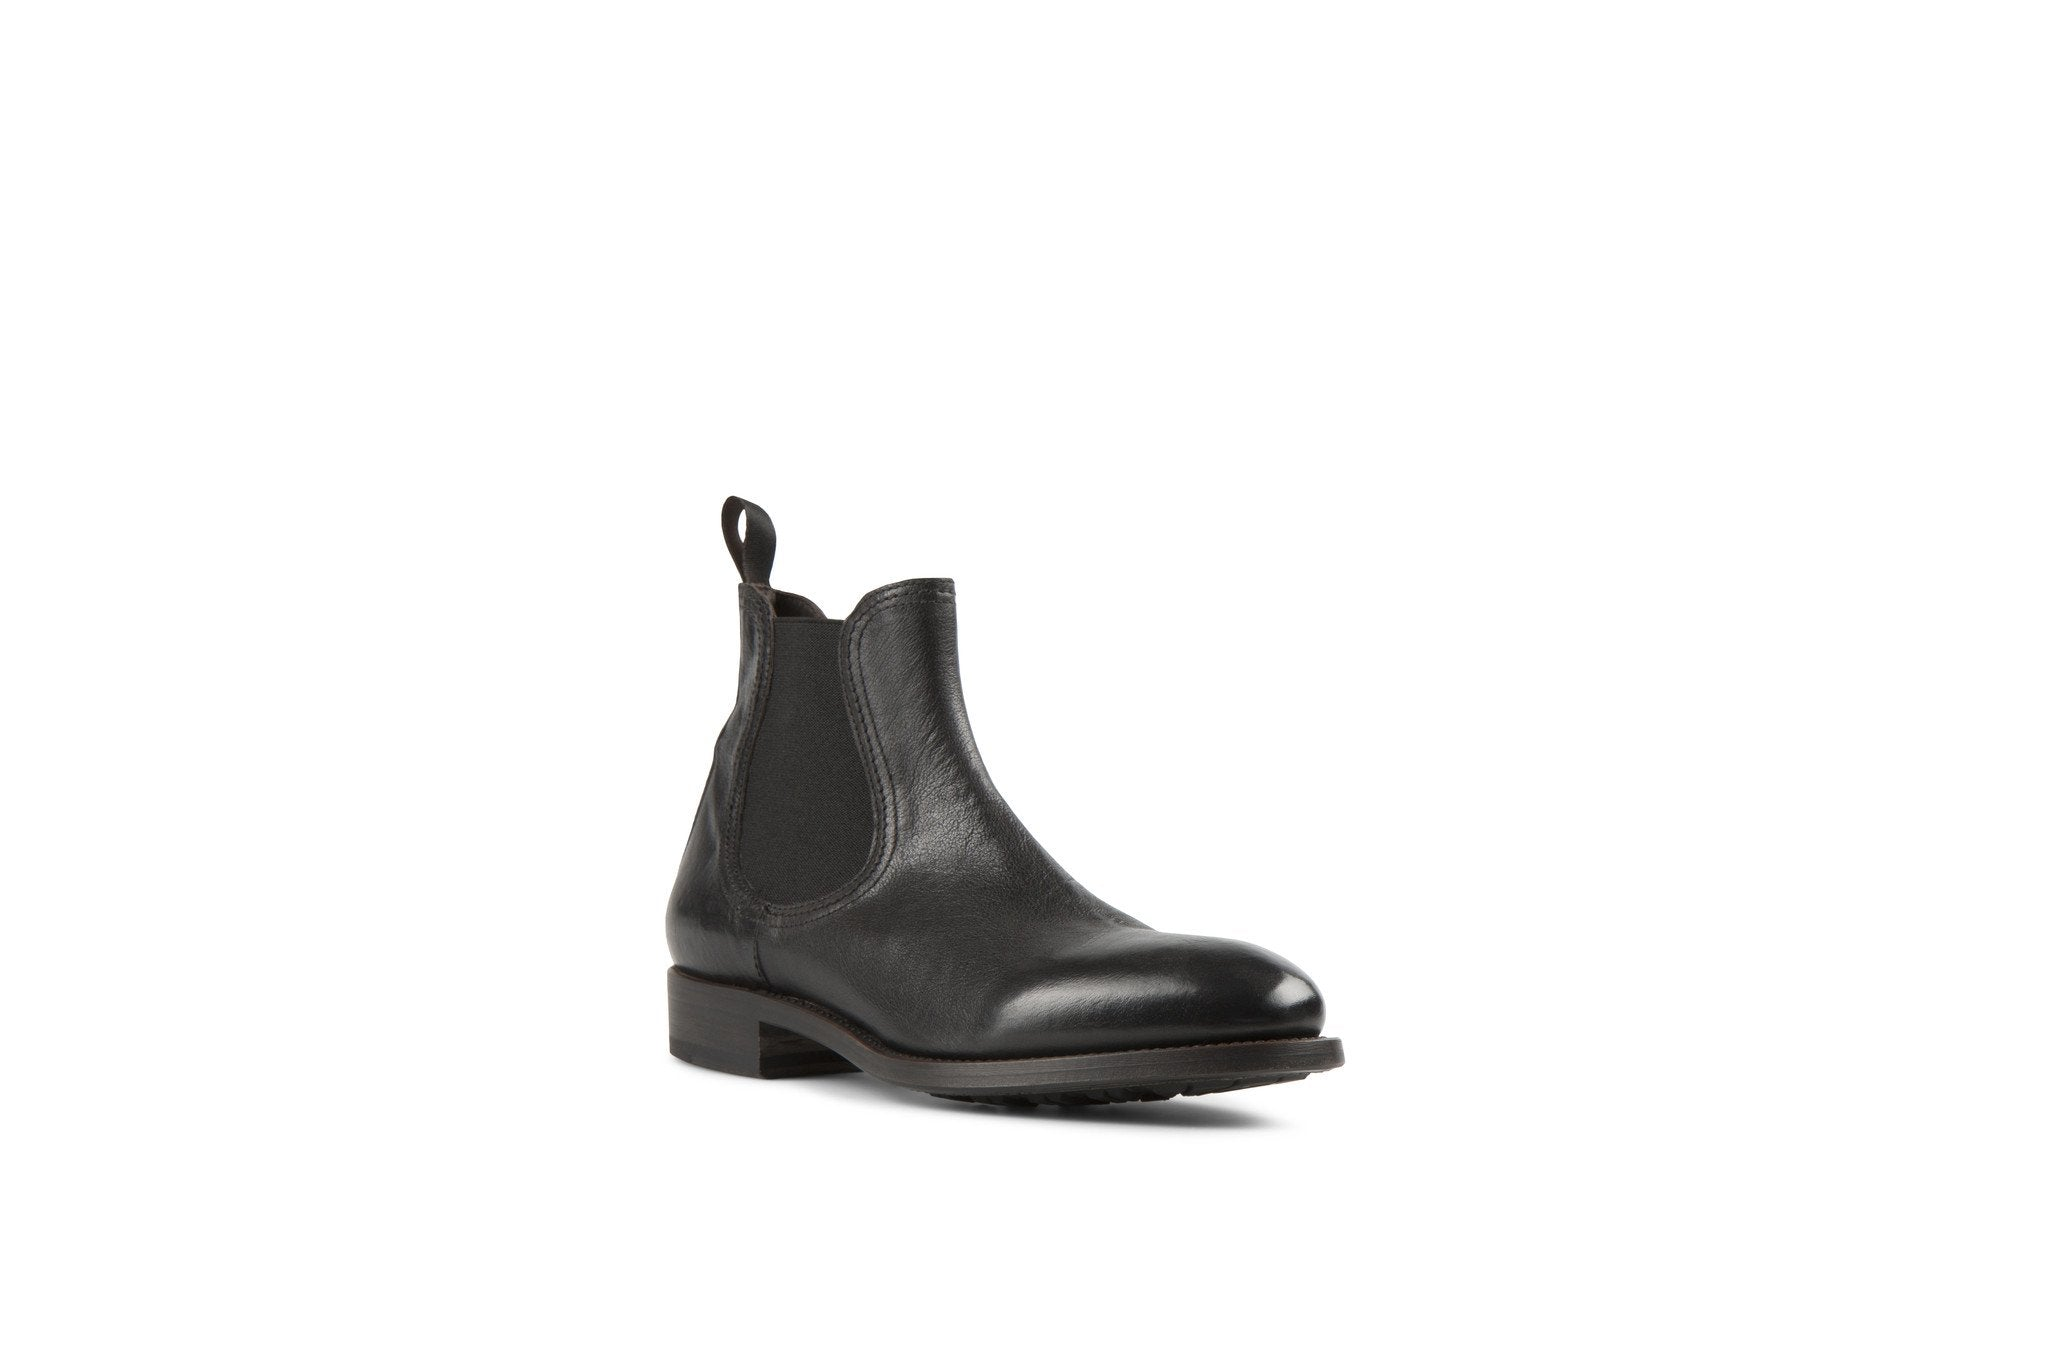 Hanoi Black Kangaroo Leather Chelsea Boots